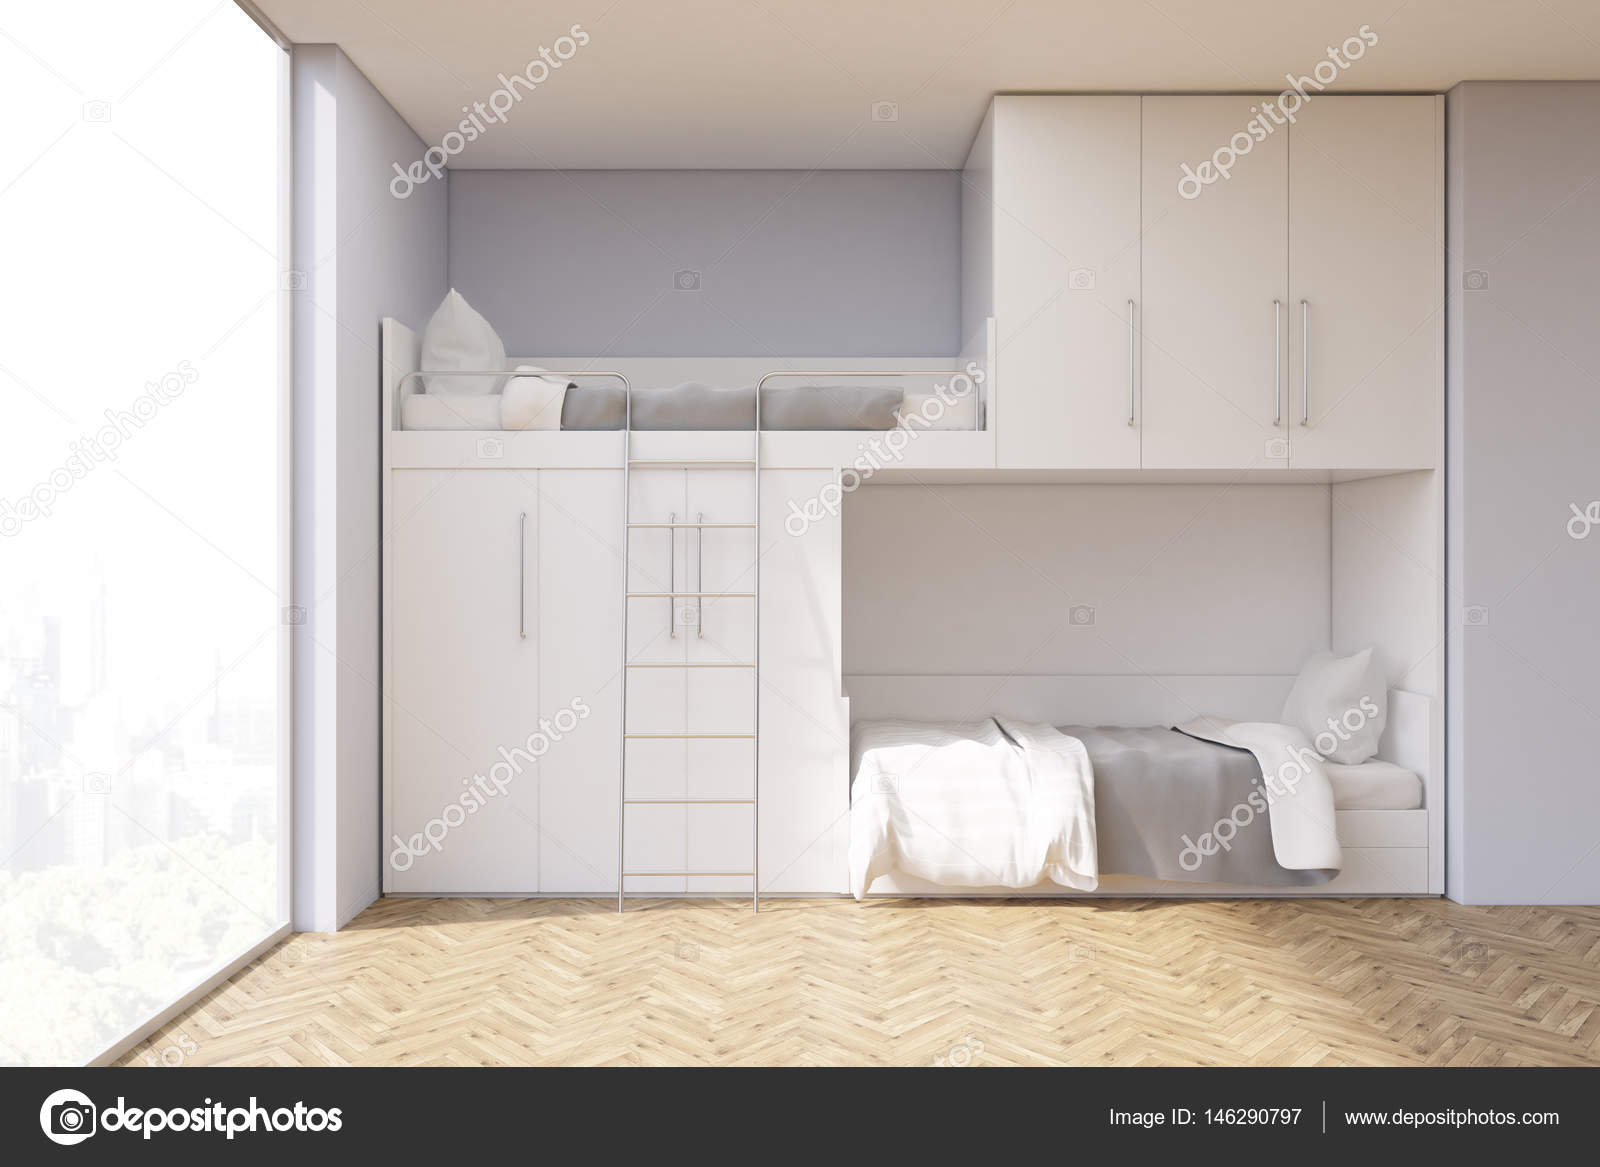 teenager zimmer mit einem etagenbett und fenster stockfoto denisismagilov 146290797. Black Bedroom Furniture Sets. Home Design Ideas